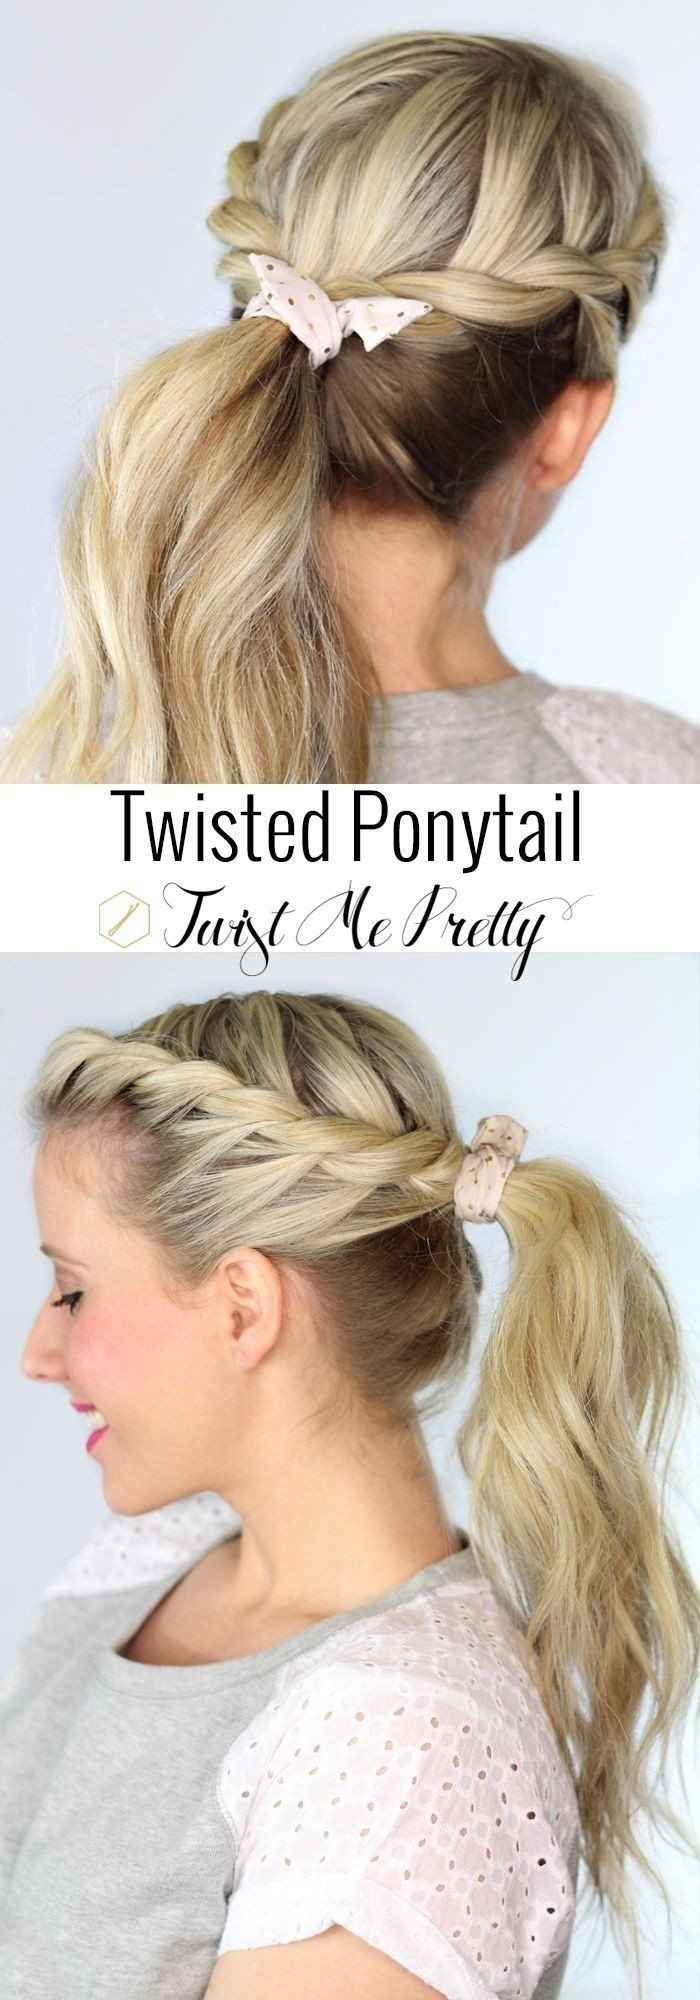 Twisted Ponytail - Easy Long Hairstyle Ideas for Summer